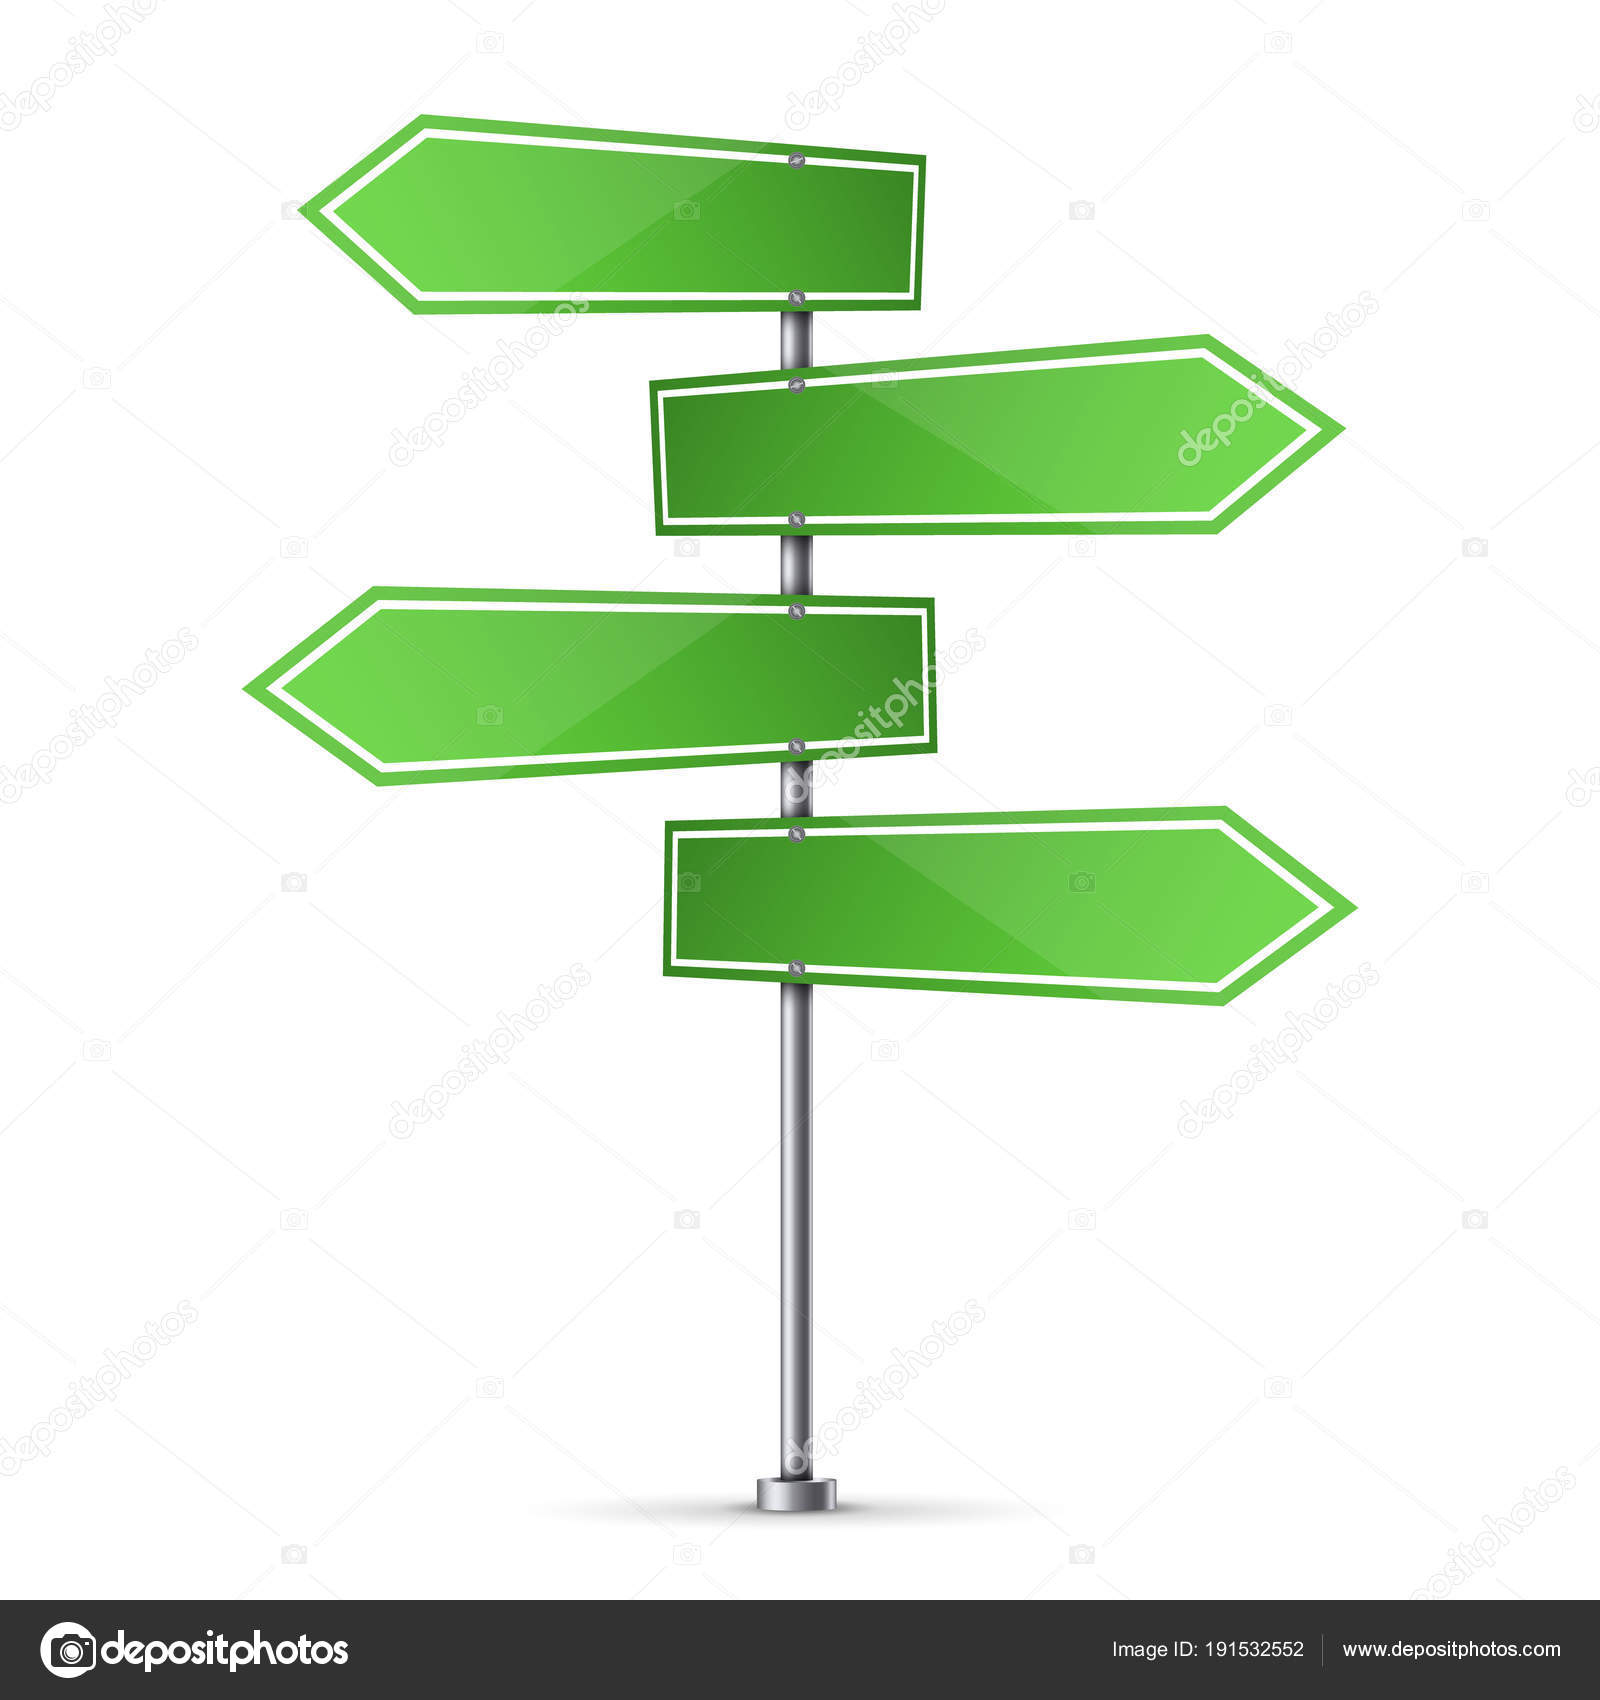 Creative Vector Illustration Of Road Sign Isolated On Background